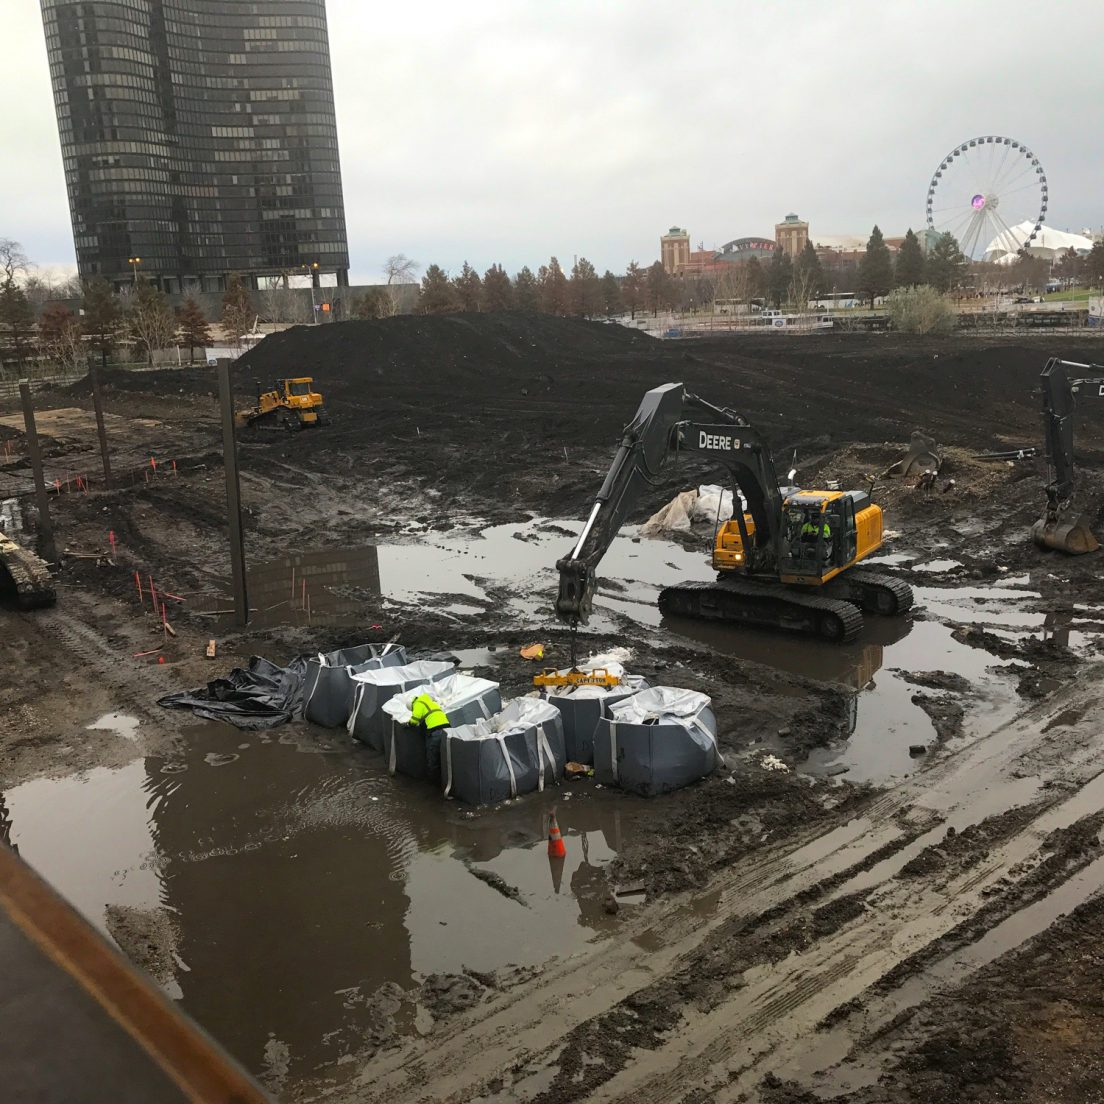 Radioactive remediation at the future DuSable Park (Courtesy of Streeterville Spy Joel)